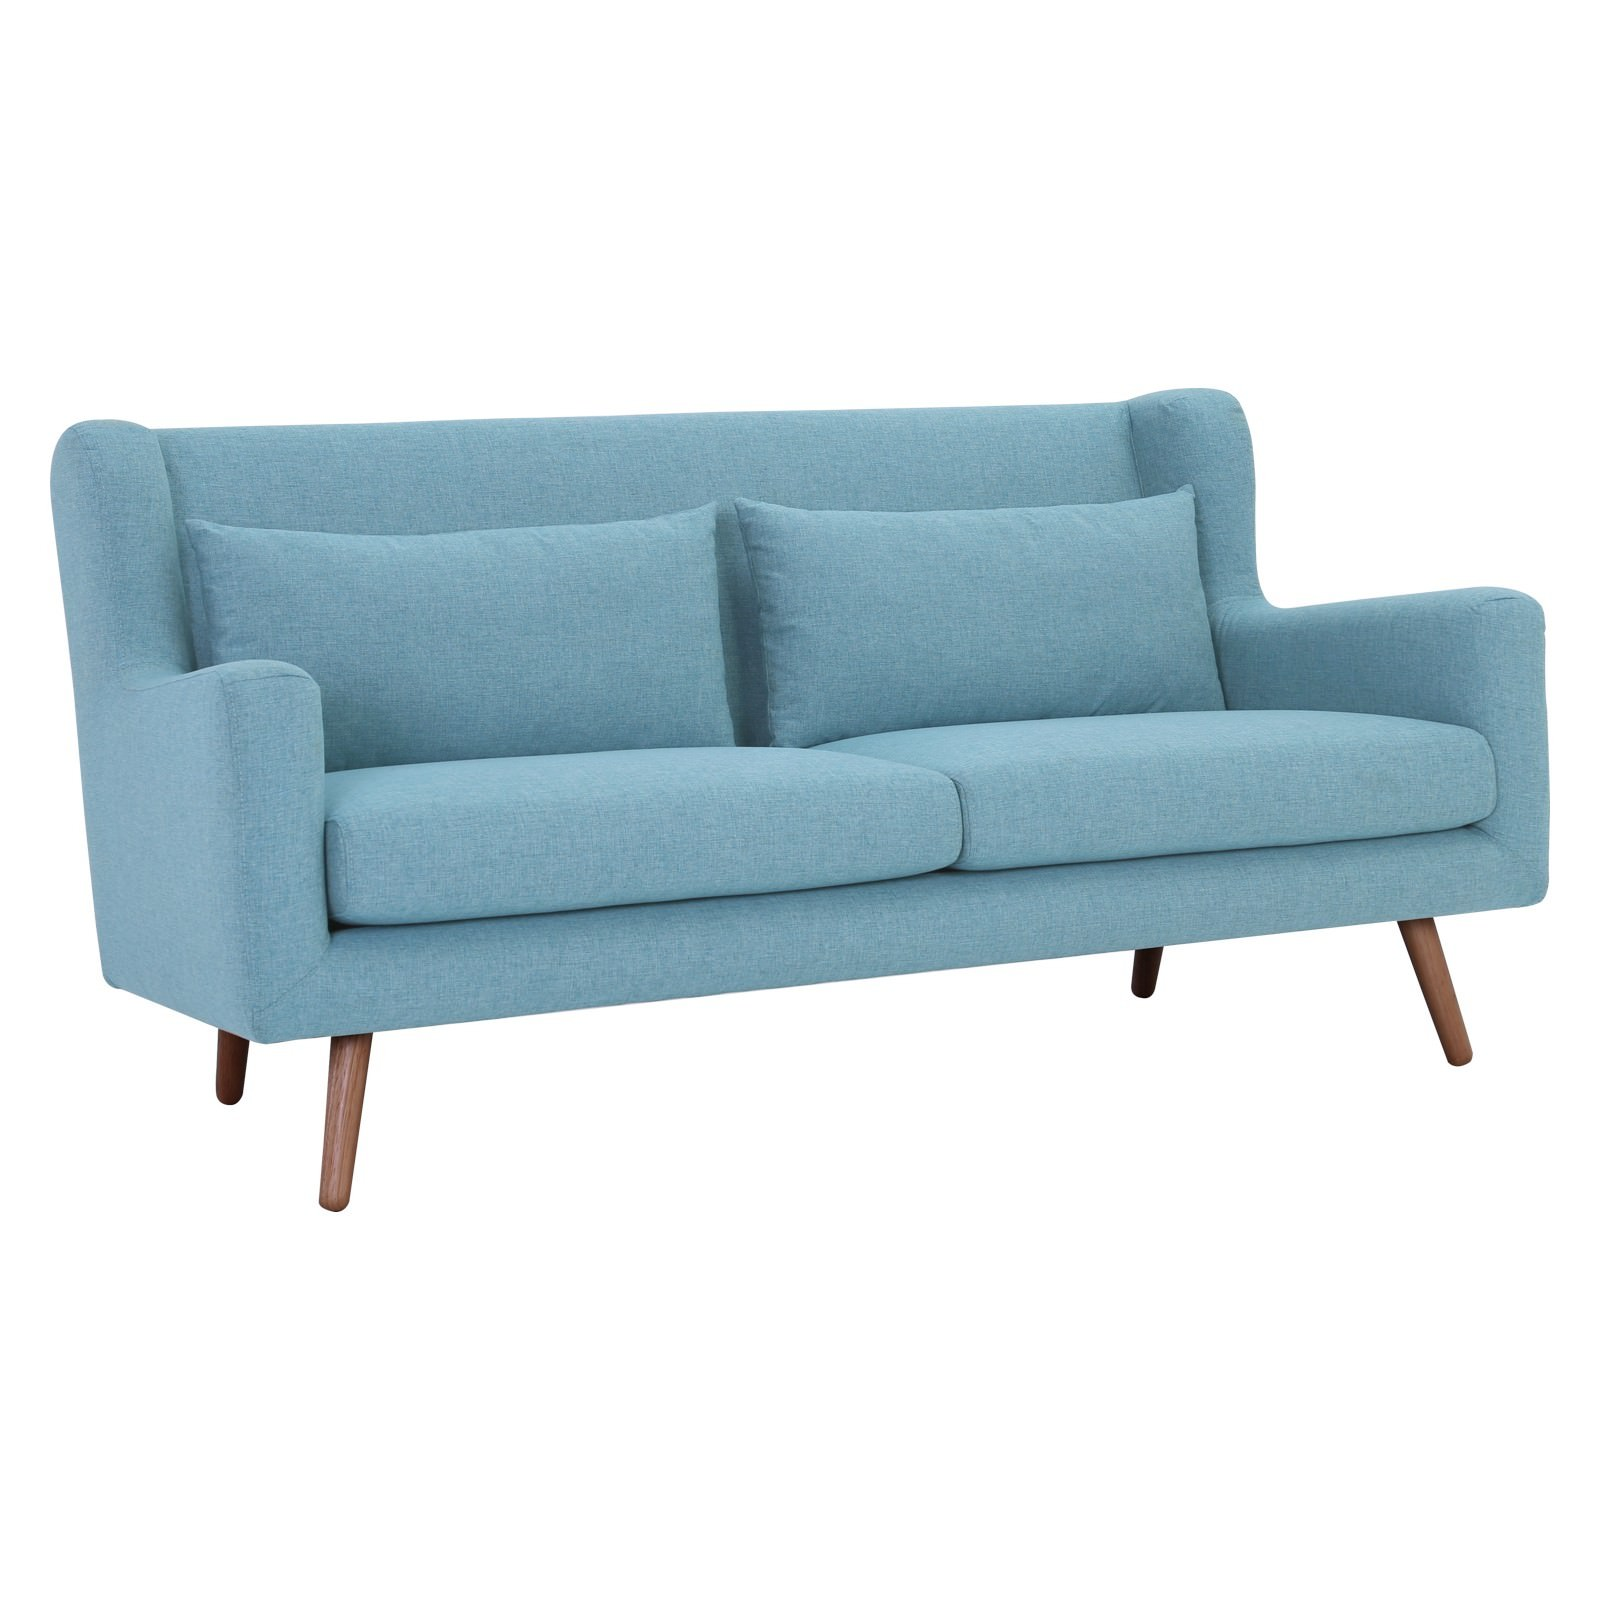 Safari Fabric Sofa, 3 Seater, Aquamarine